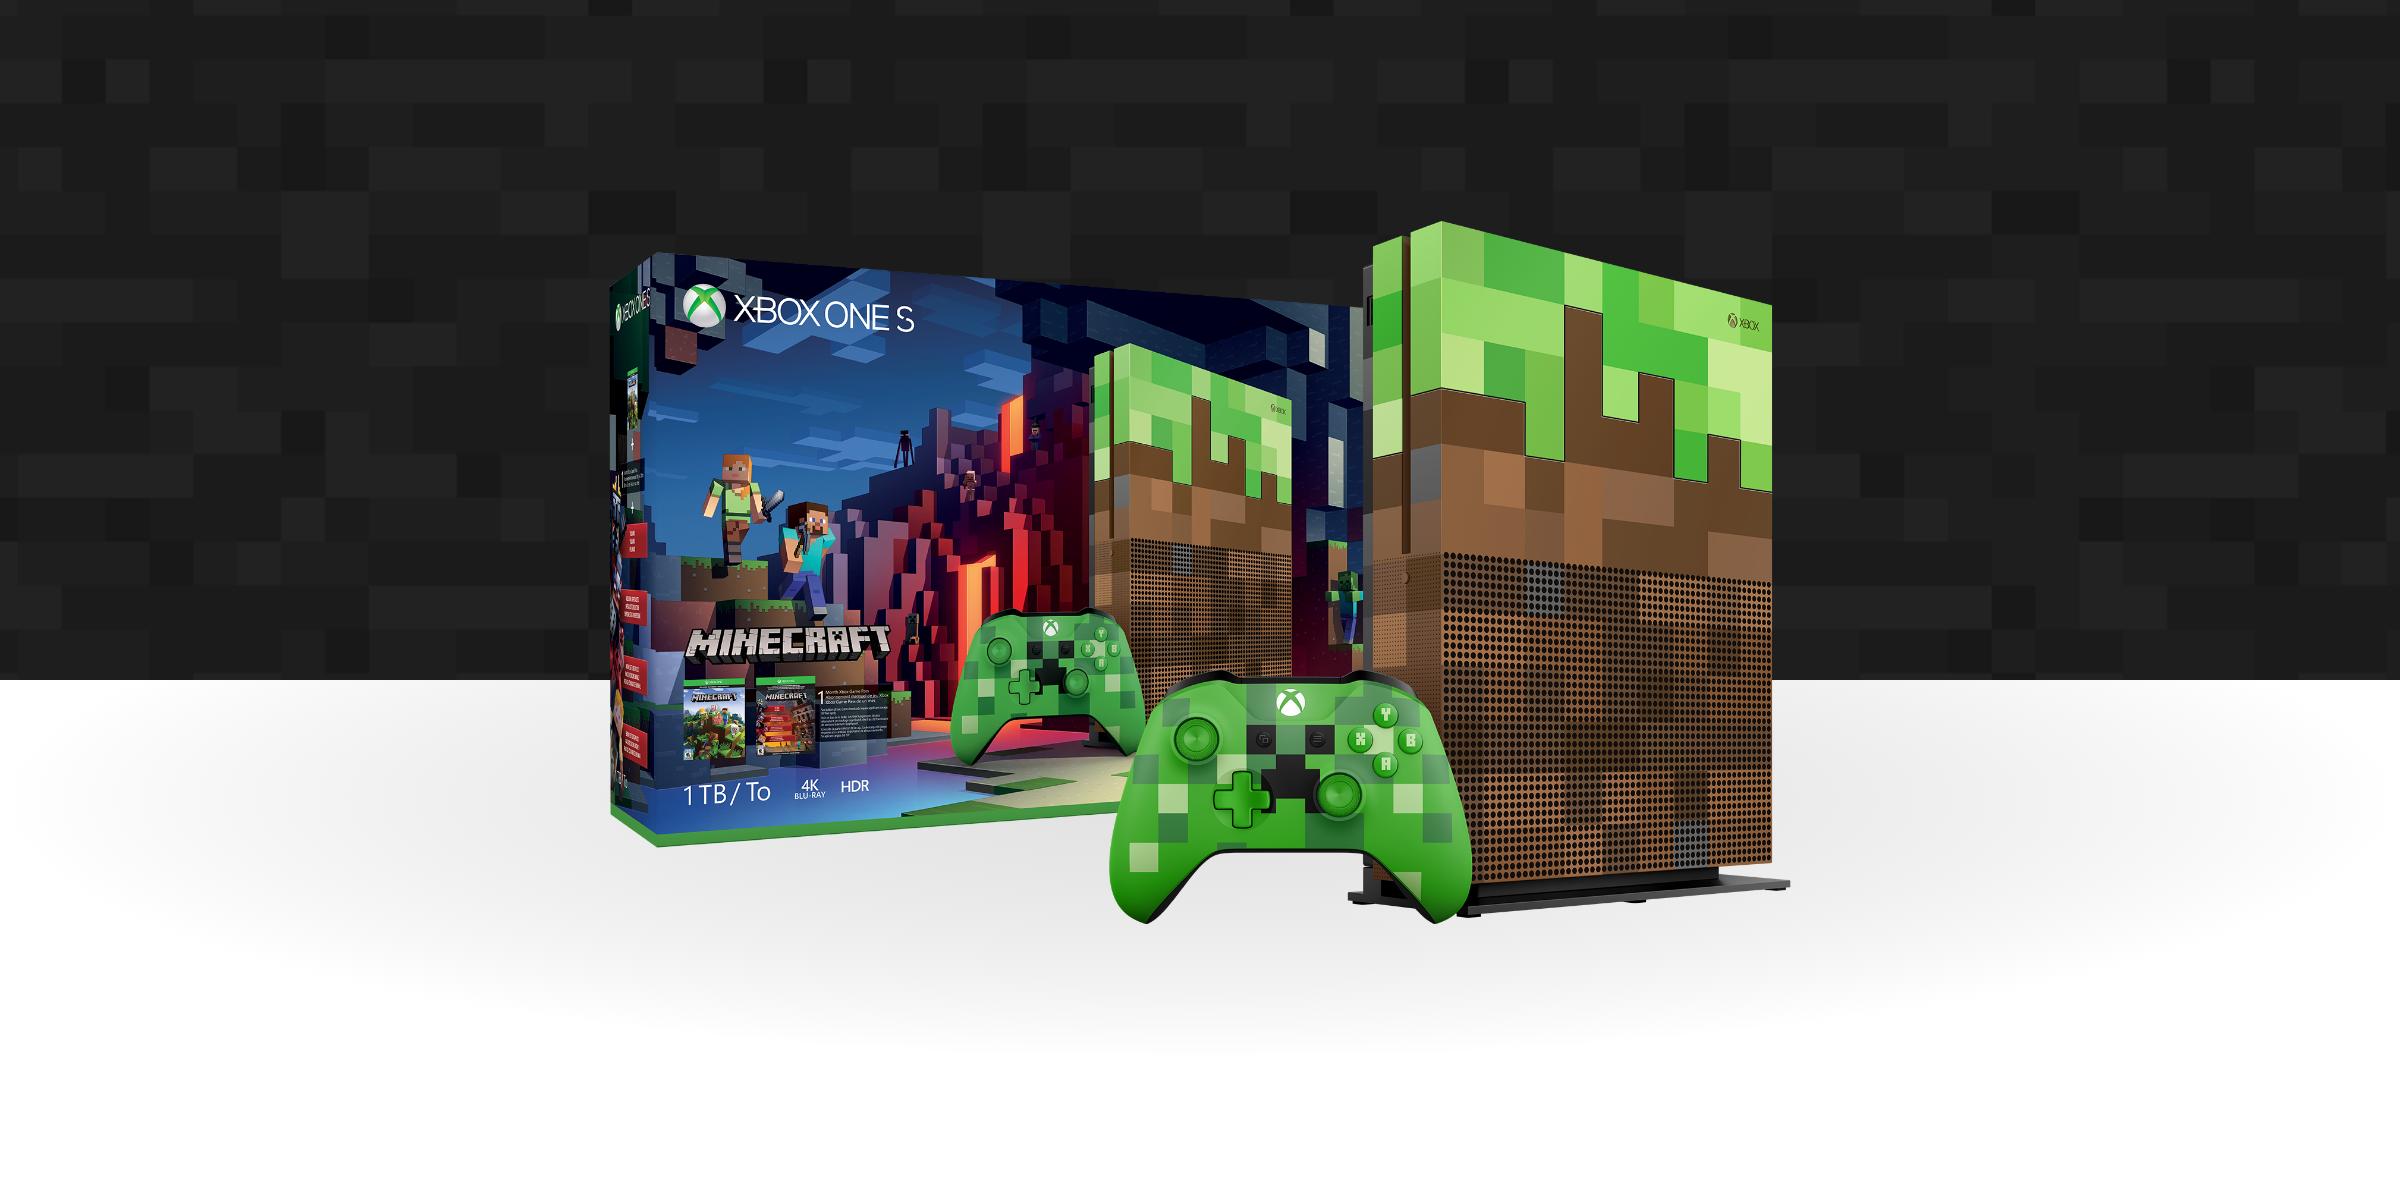 Minecraft special edition console and bundle box